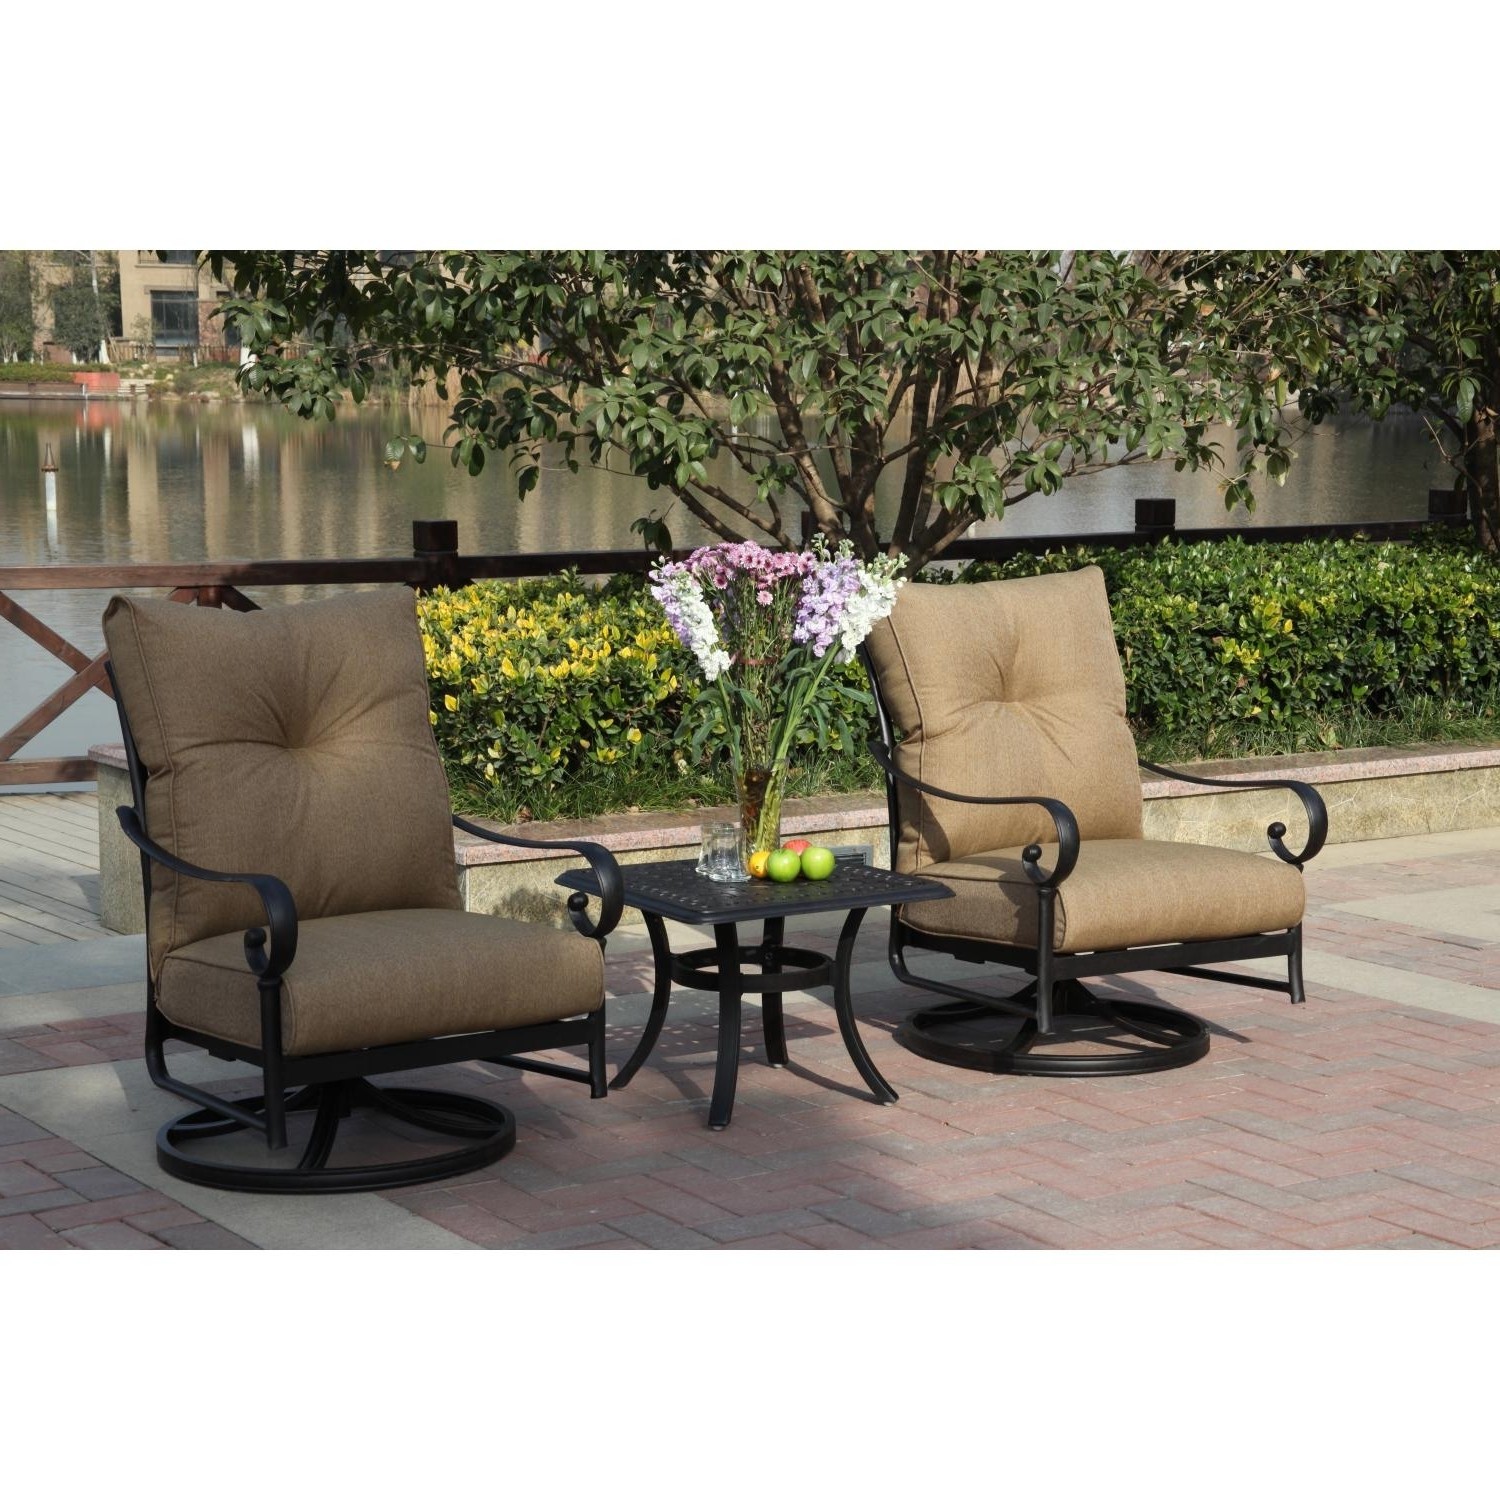 Darlee Santa Anita 3 Piece Aluminum Patio Conversation Seating Set Throughout Popular Deep Seating Patio Conversation Sets (View 10 of 20)